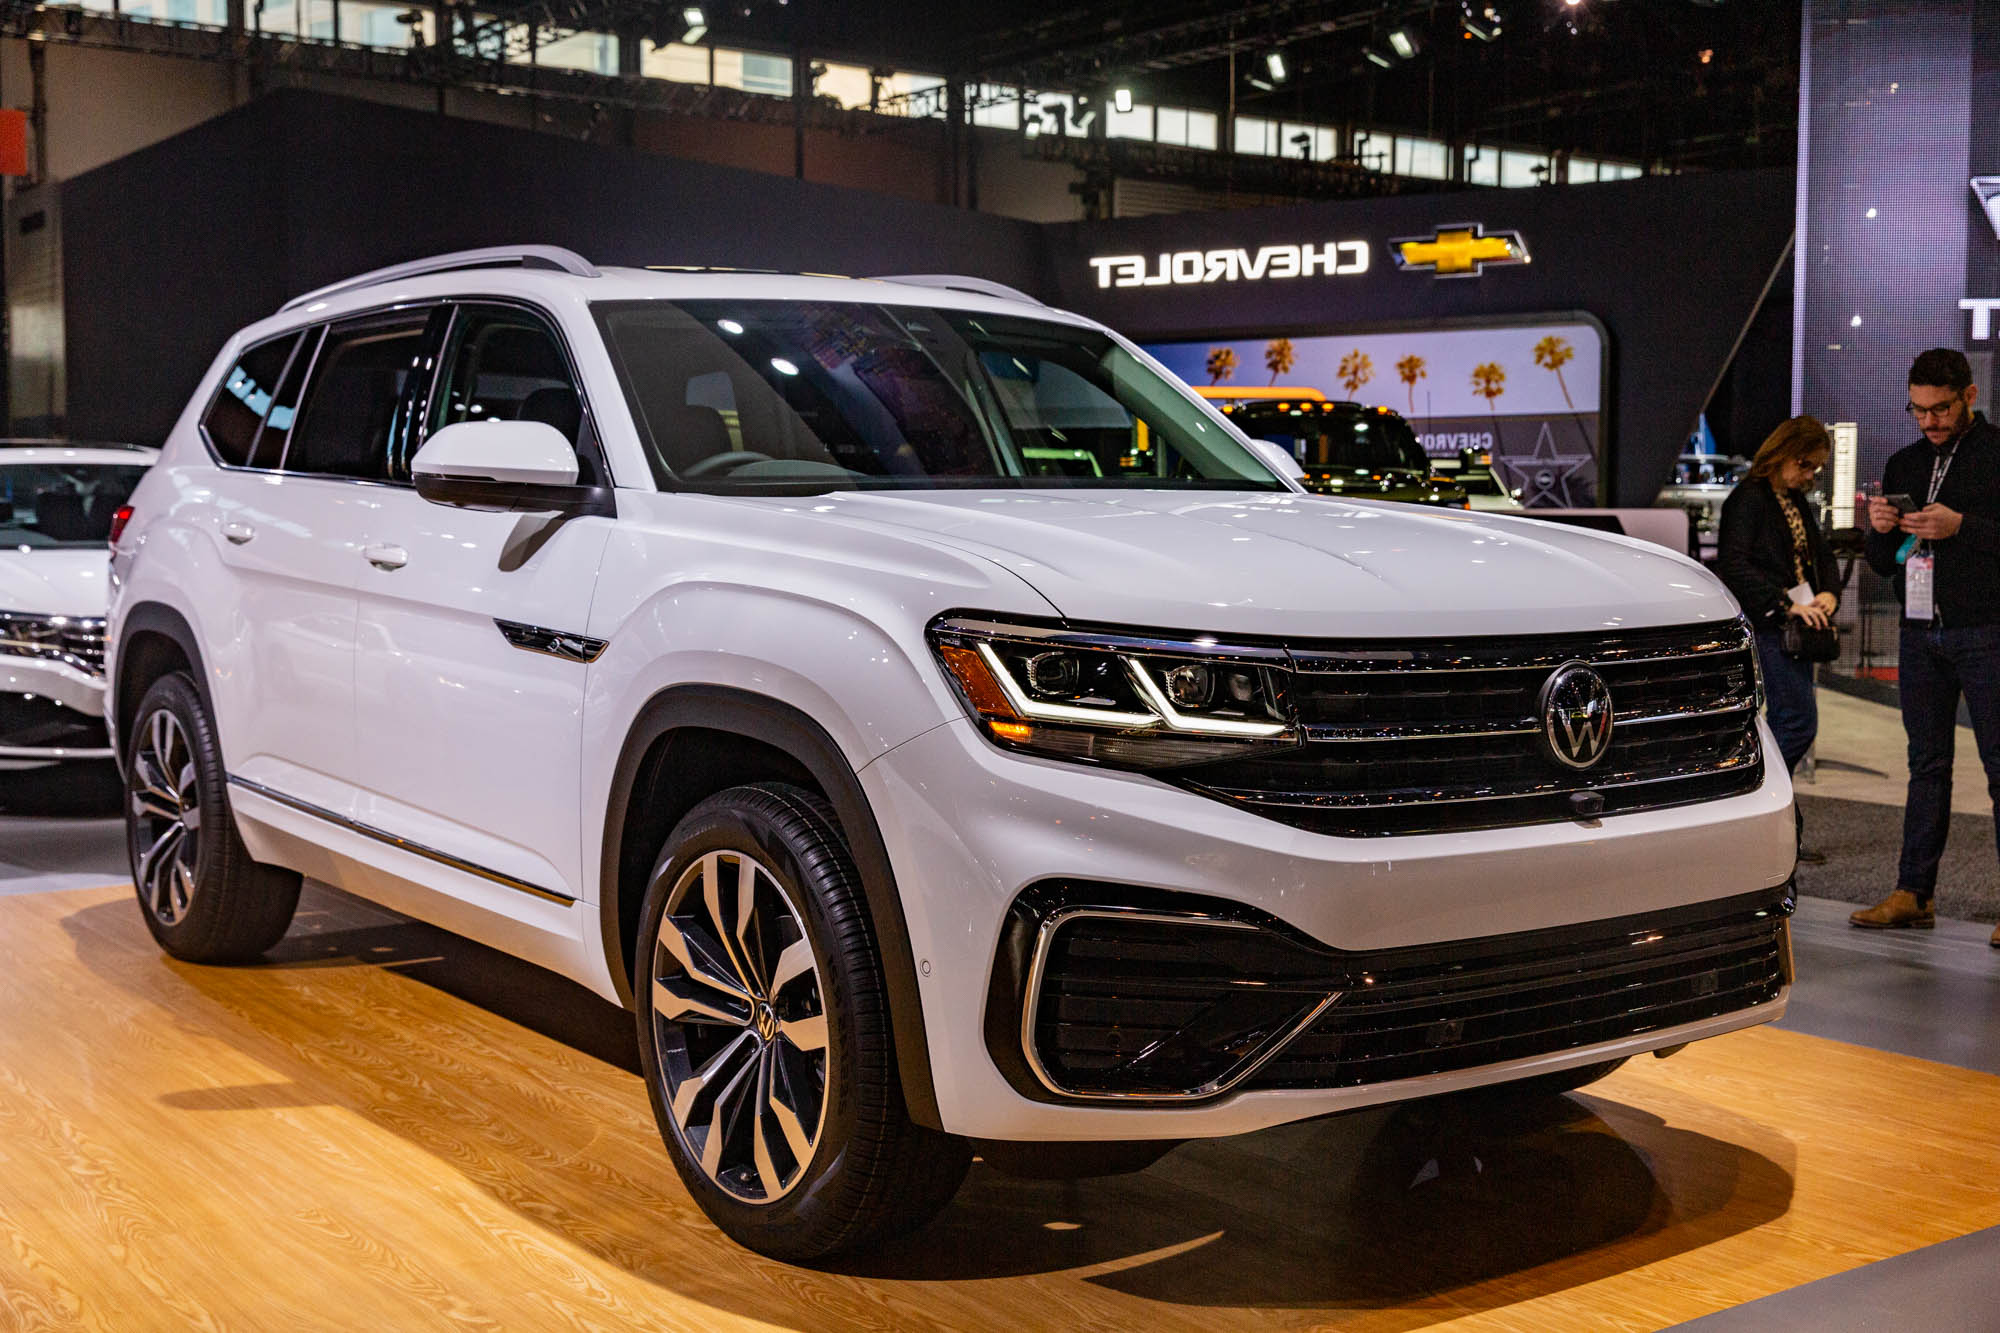 2021 Volkswagen Atlas Gets A Fresh Look But Keeps The Old Price